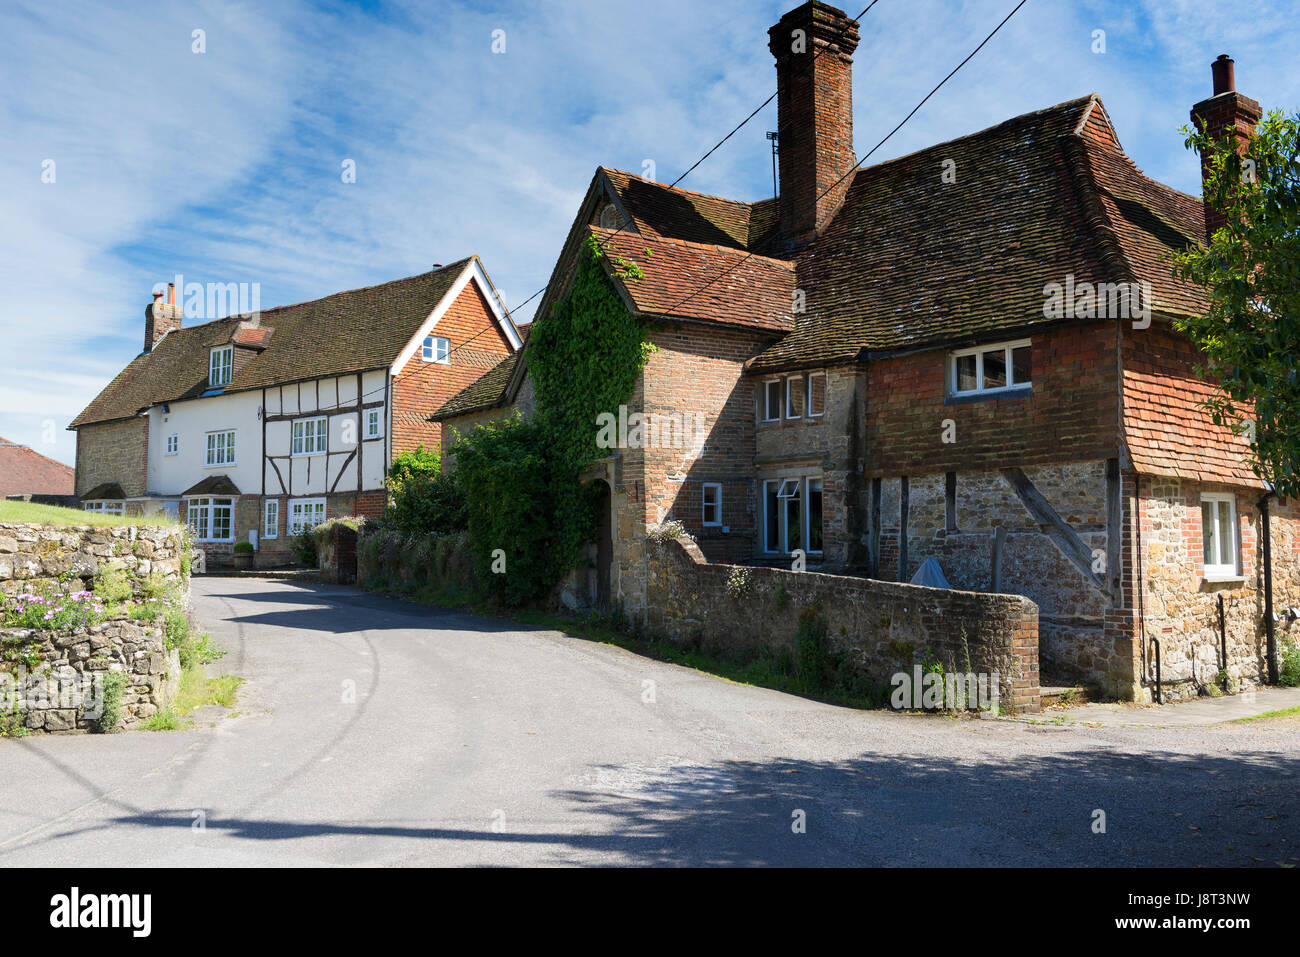 The village of Tillington west of Petworth on a bright spring afternoon - Stock Image